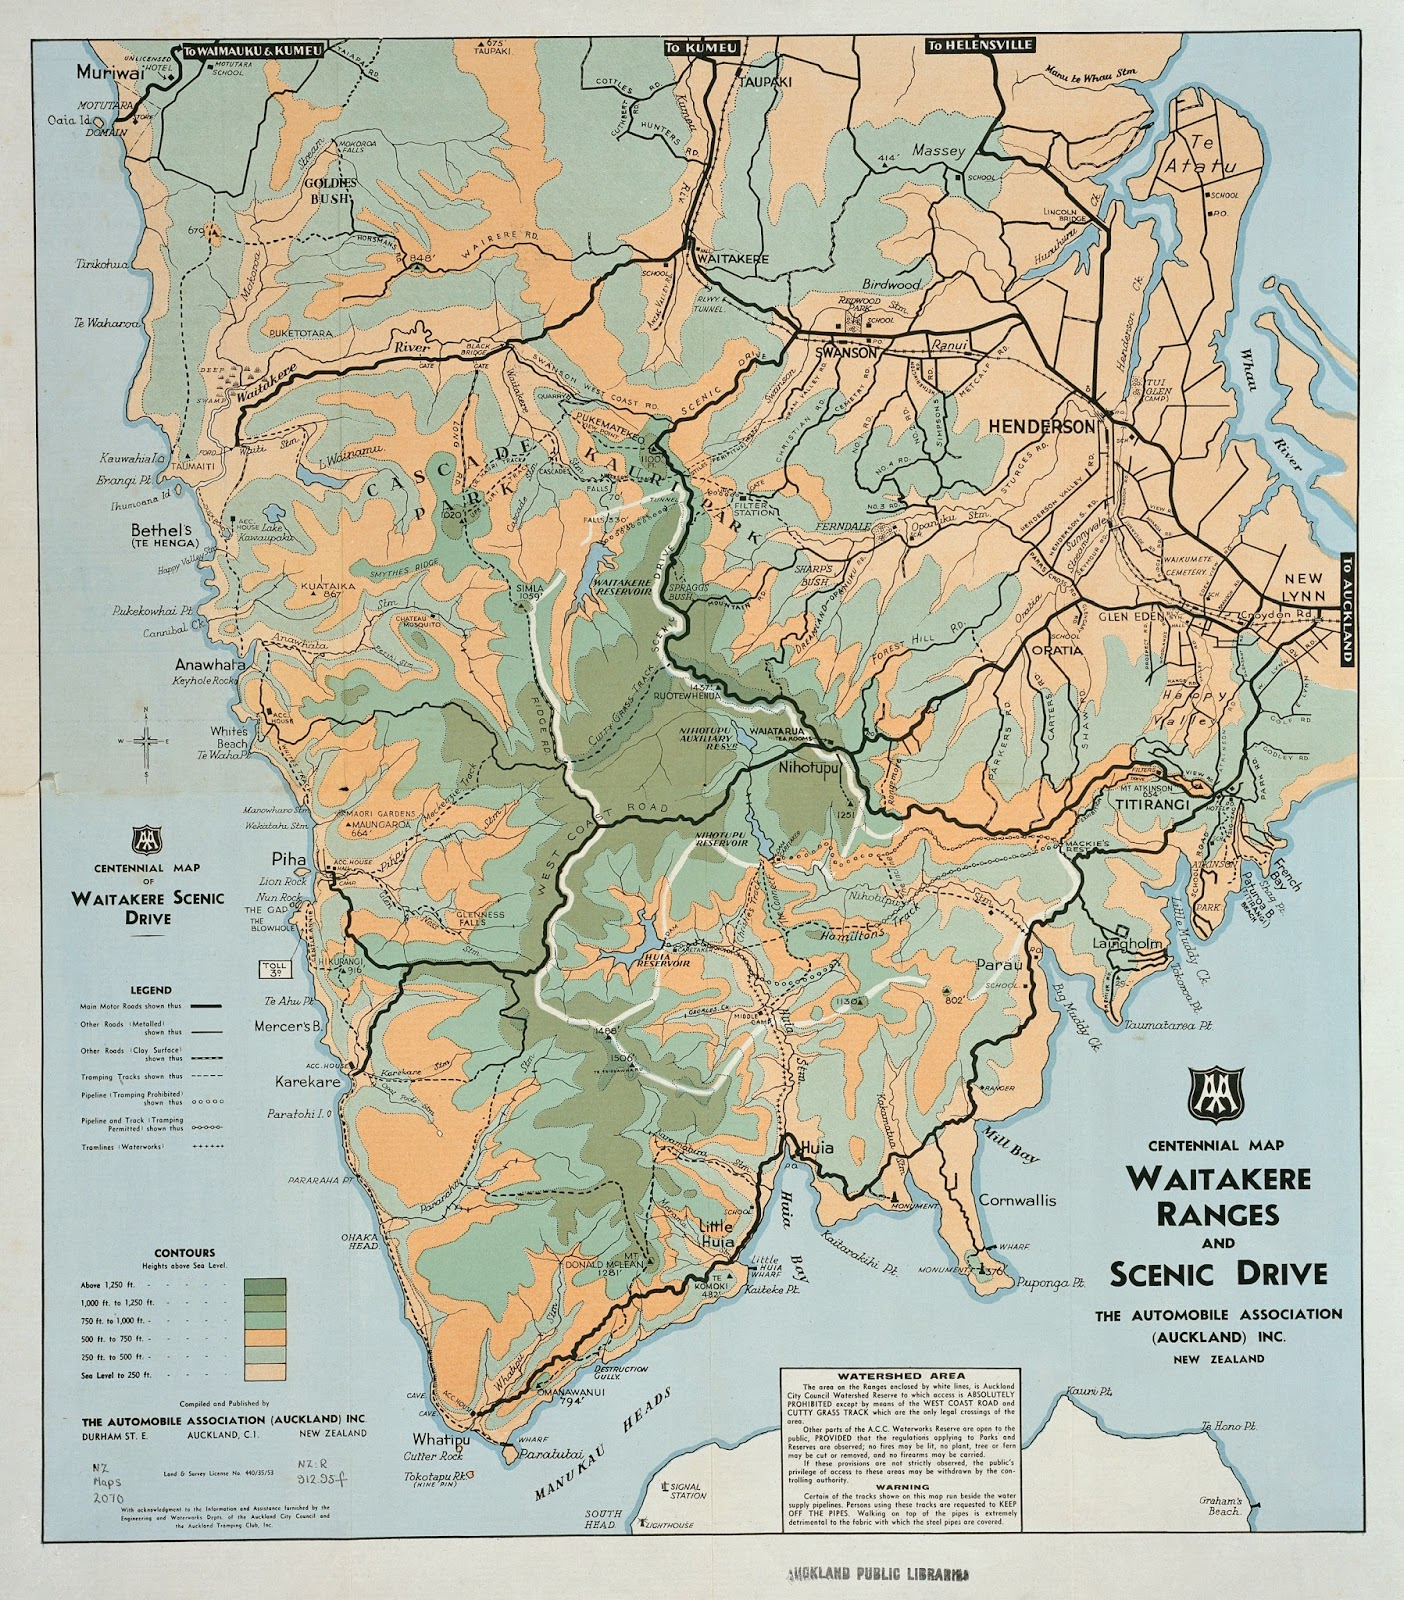 ref centennial map of waitakere ranges and scenic drive 1945 nz map 2070 sir george grey special collections auckland libraries